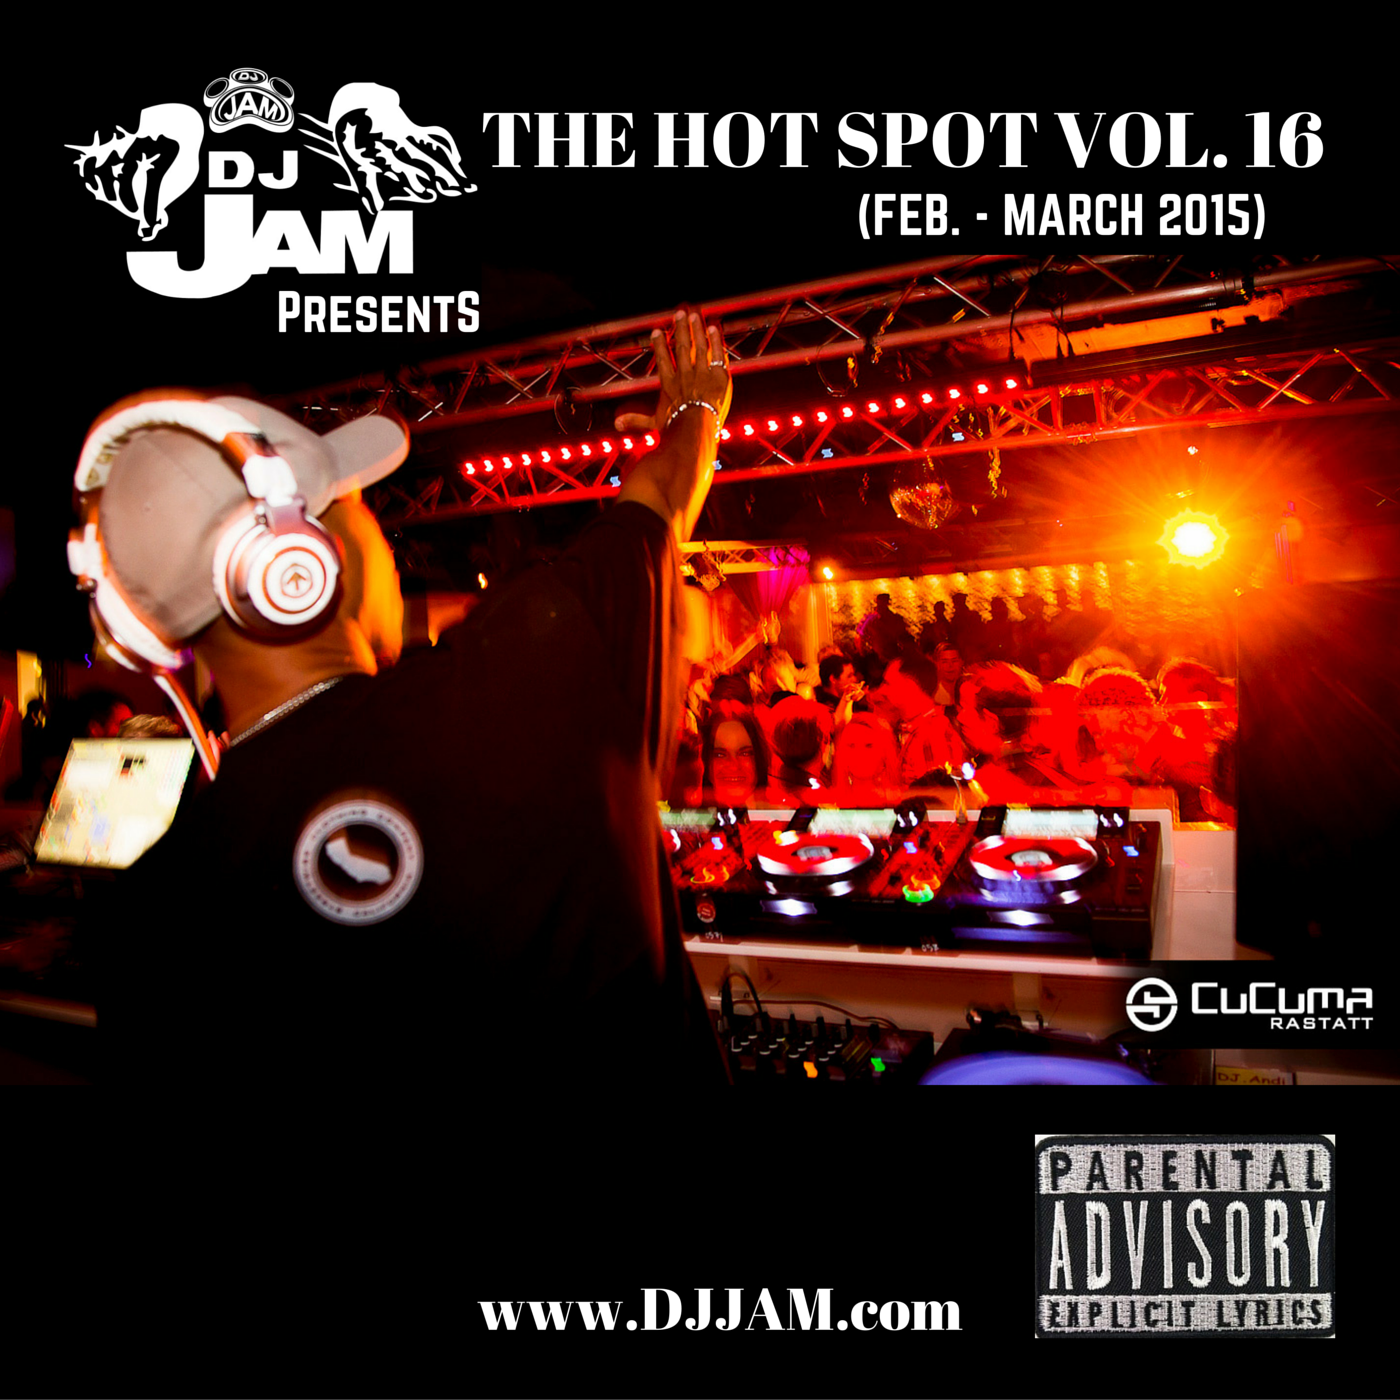 """NEW MUSIC"" The Hot Spot Vol.16 featuring San Diegos Dan Diego, Oso Ocean & Young Lyxx) - Listen Now!!! #DJVATICAN (@YOUNGLYXX @DaNxDieGo  @OsoxOcean)"